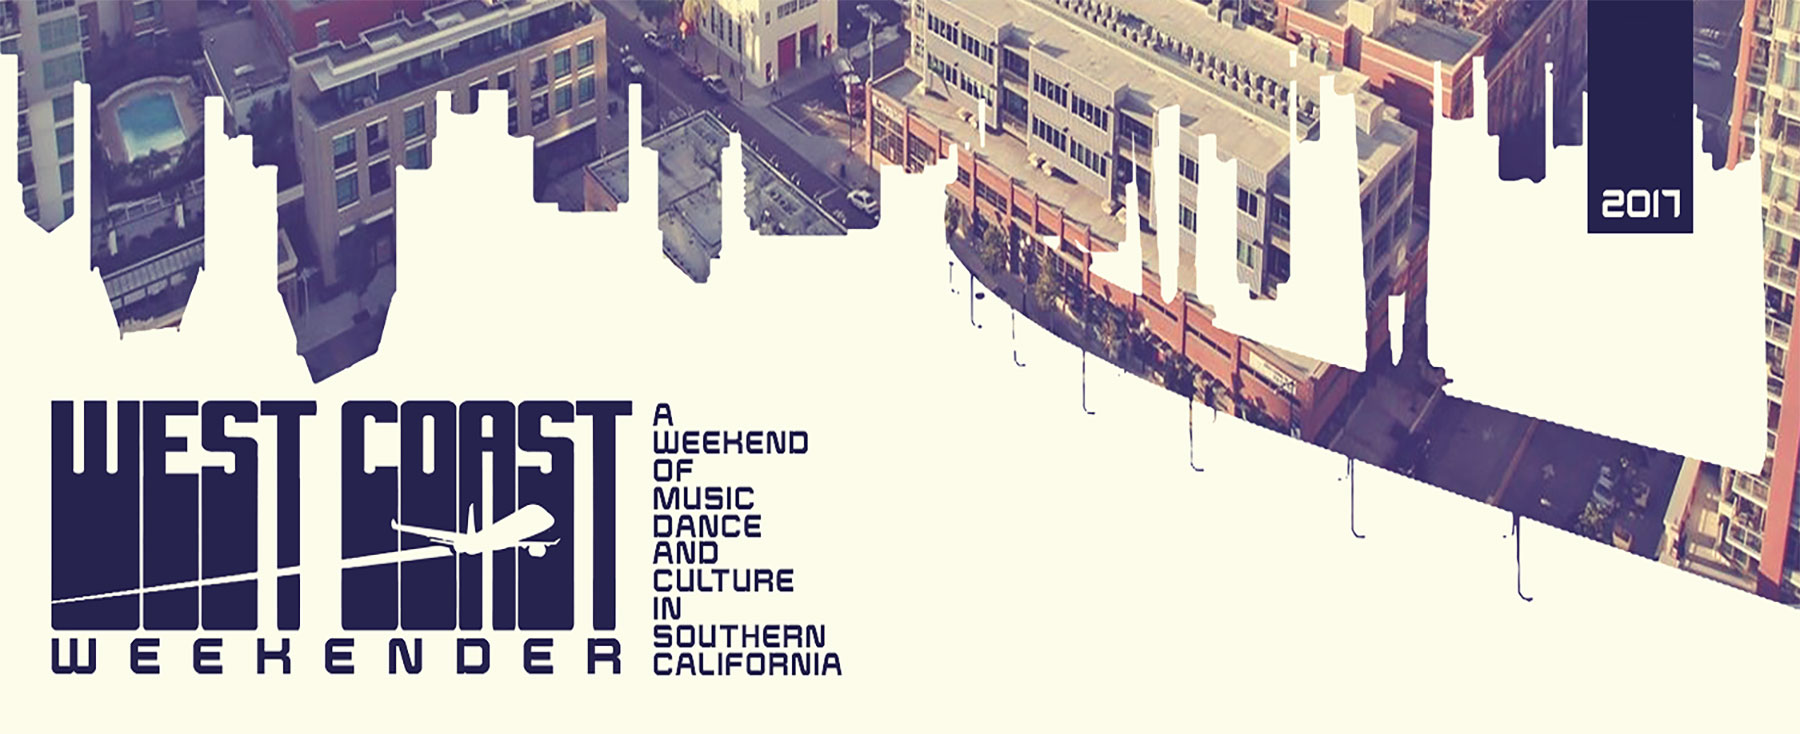 West Coast Weekender - Top Things to Do in San Diego